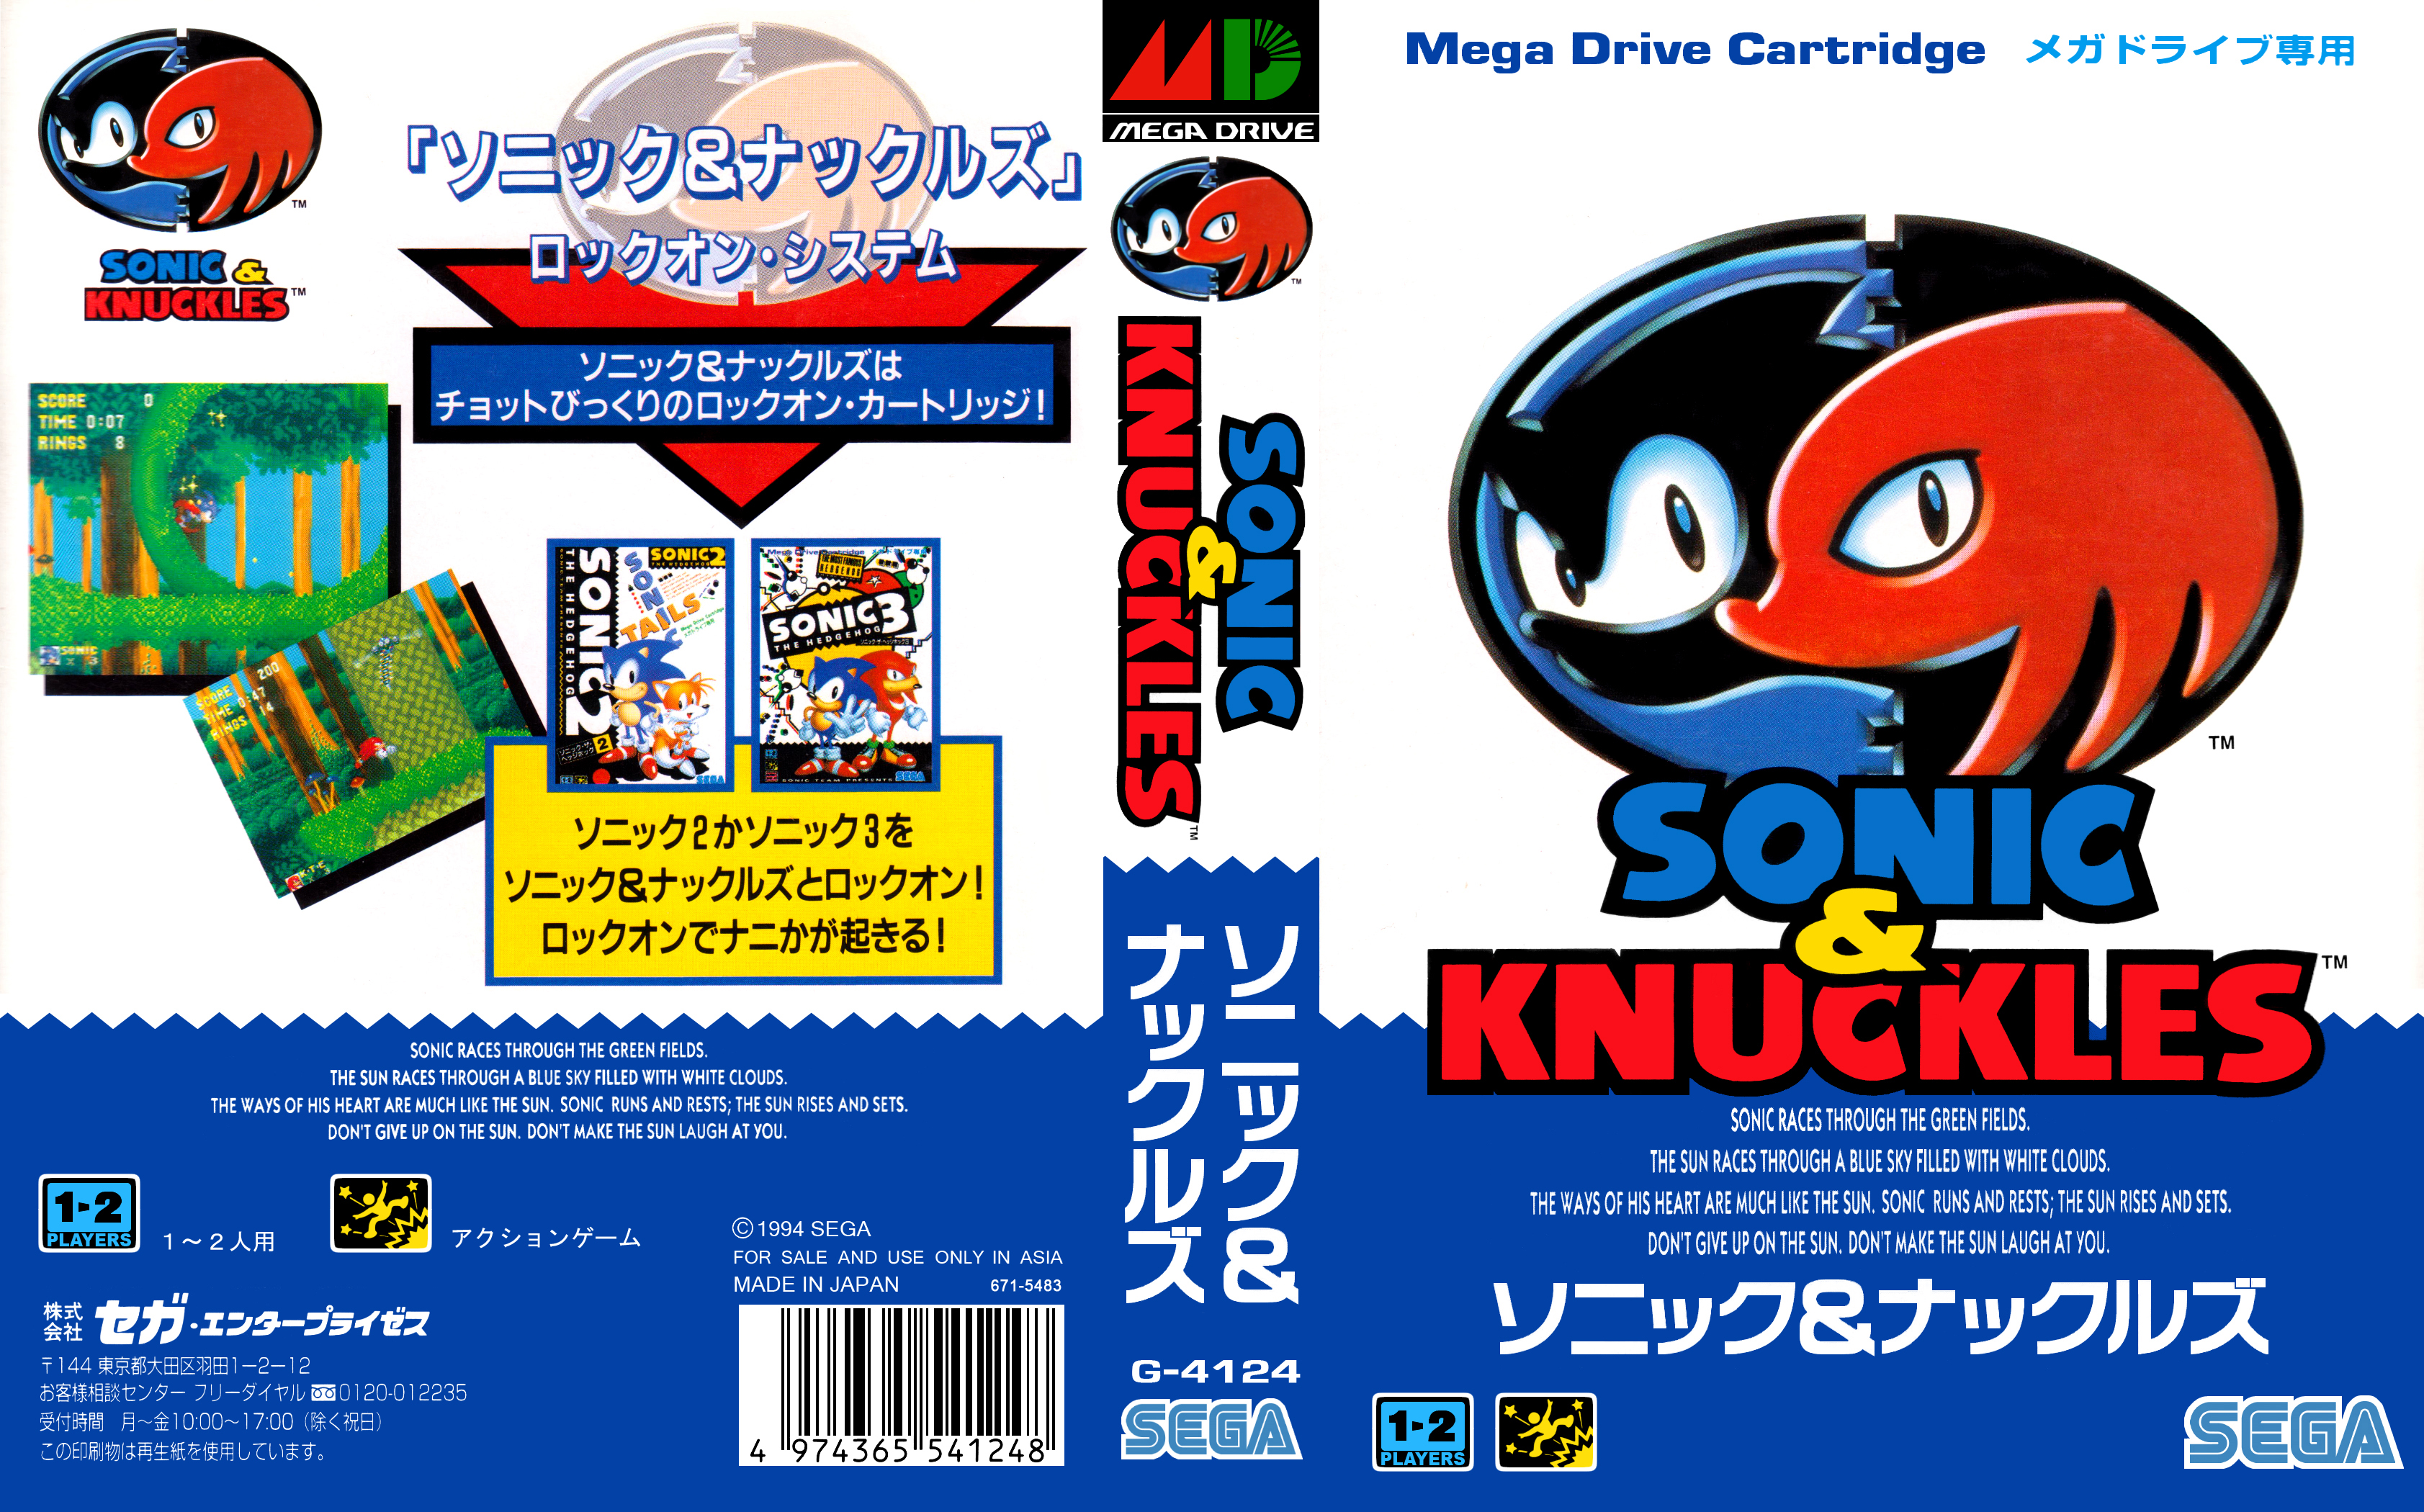 Sega Megadrive Genesis S Game Cover Box Art